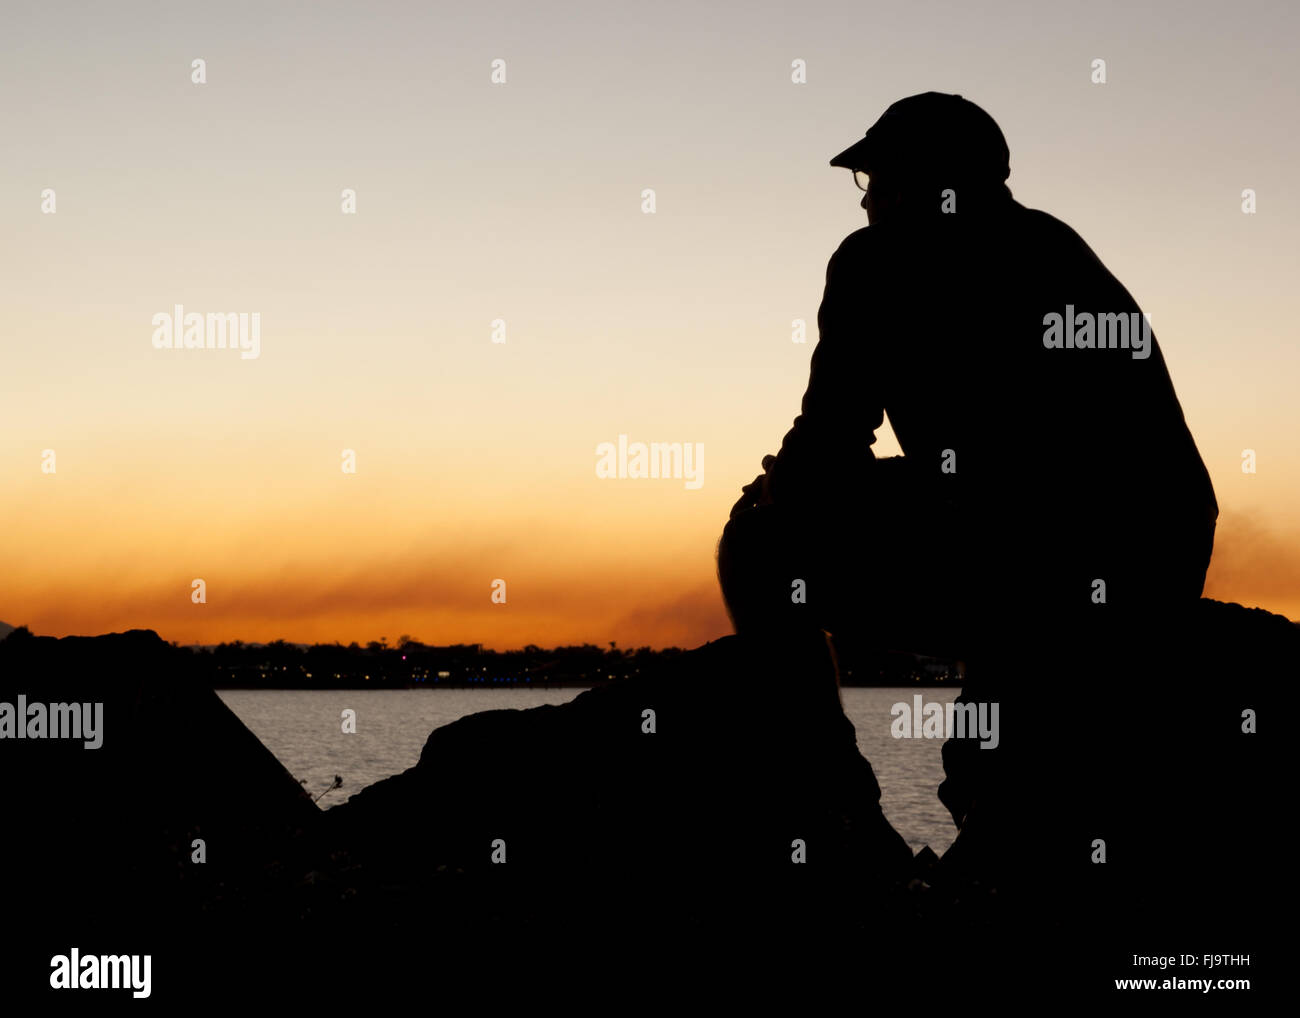 man in silhouette sitting alone watching sunset and contemplating